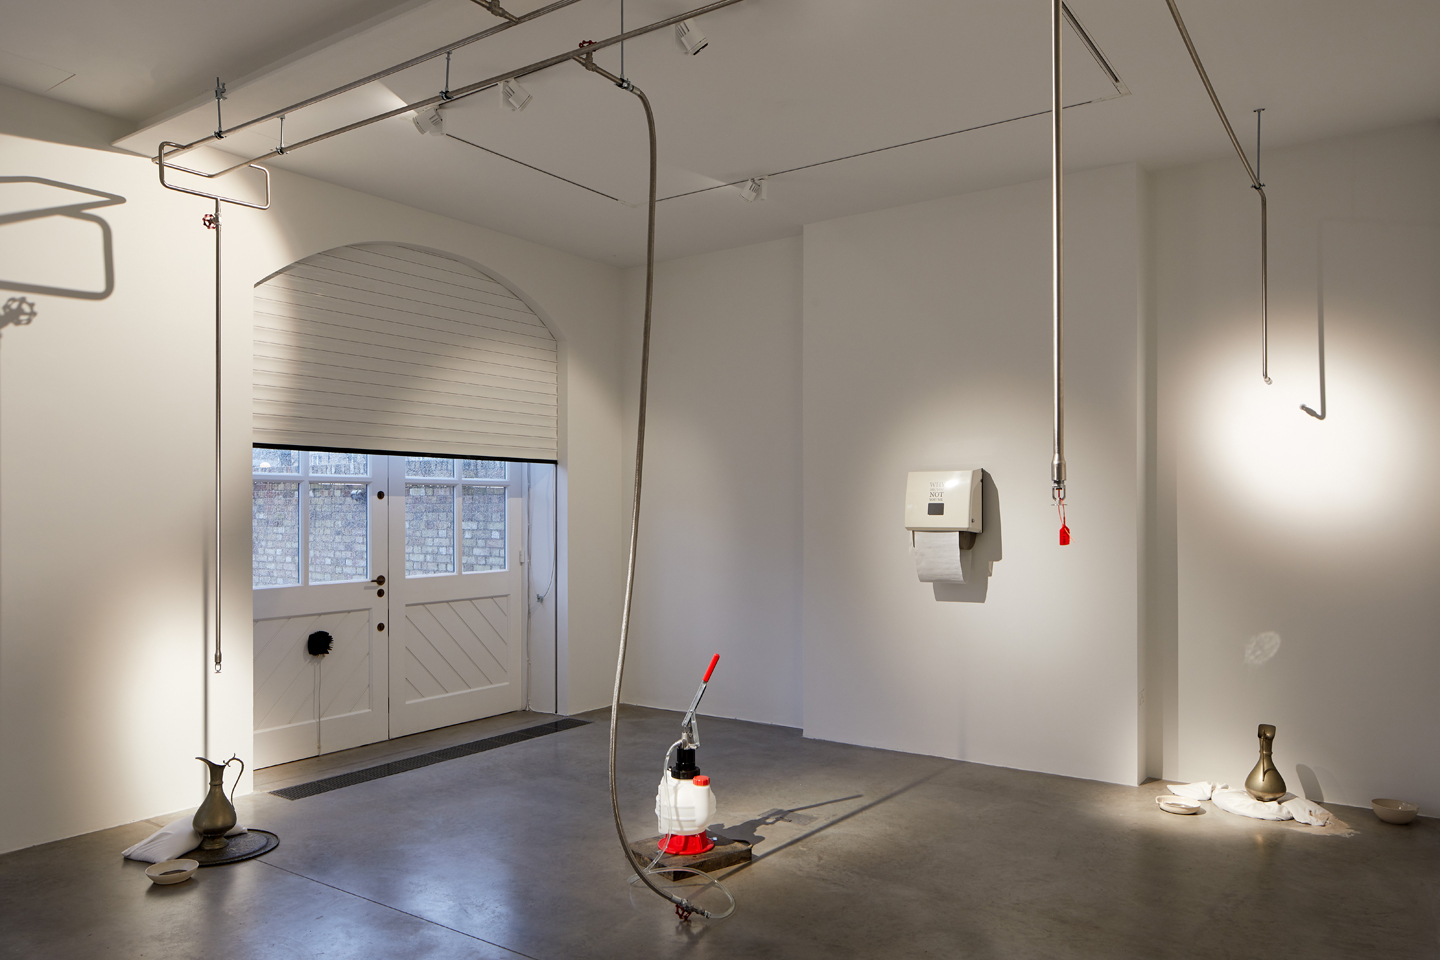 Abbas Zahedi, How To Make A How From A Why, 2020. Installation view at the South London Gallery. Photo Andy Stagg (1)